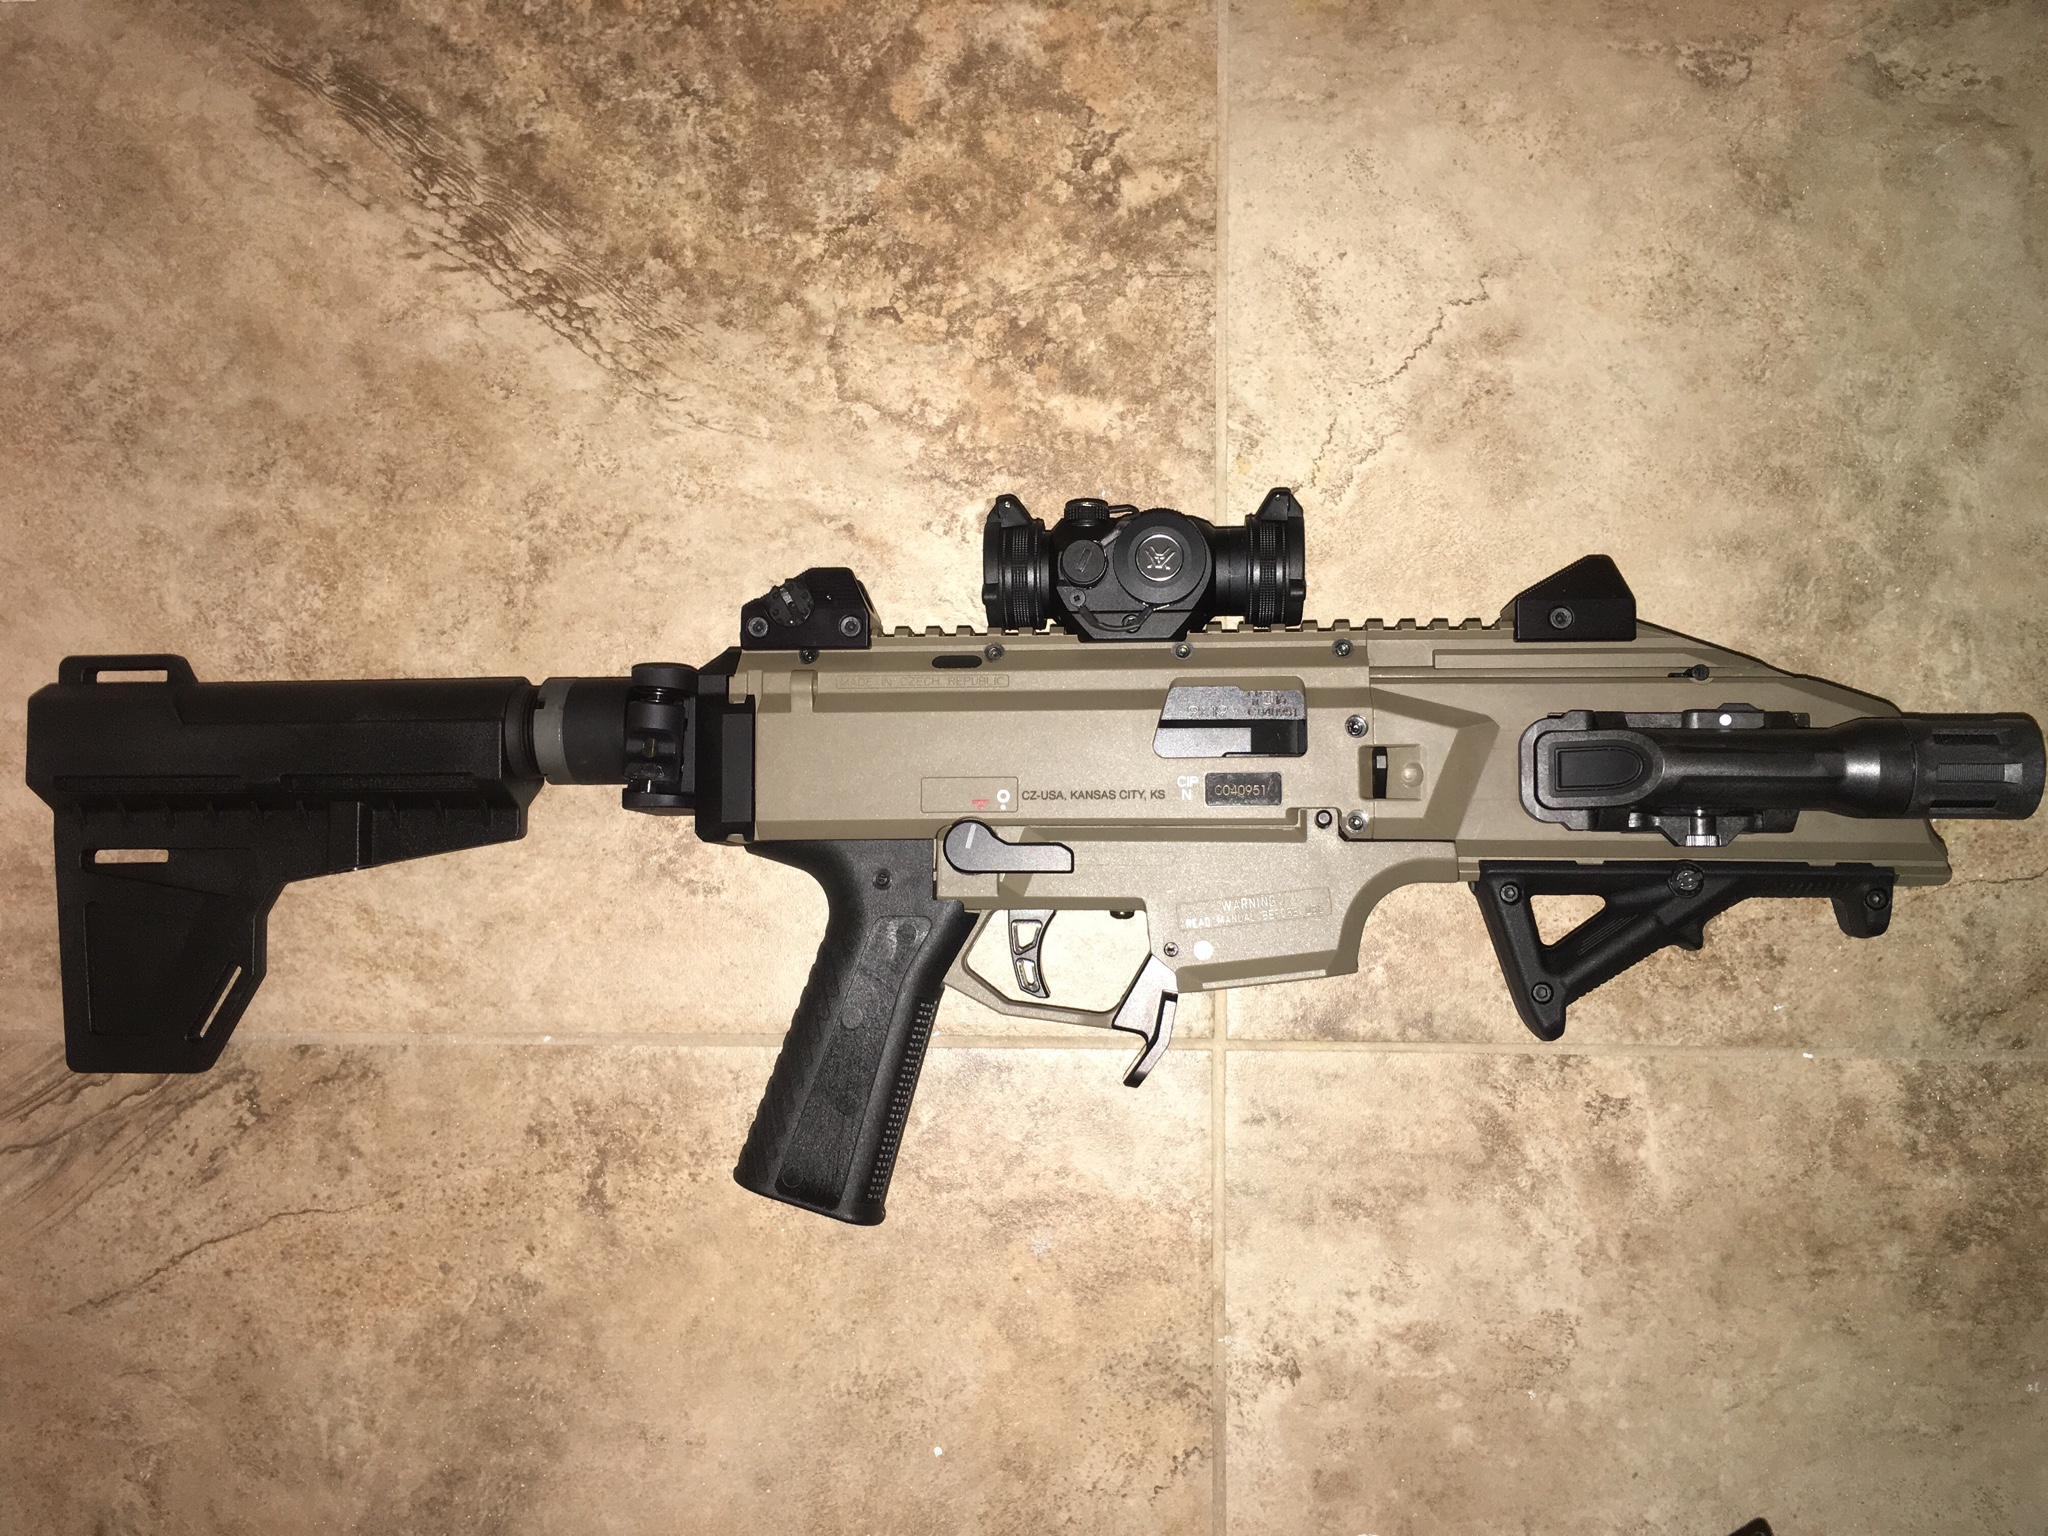 Right side Safety + folding stock issues?